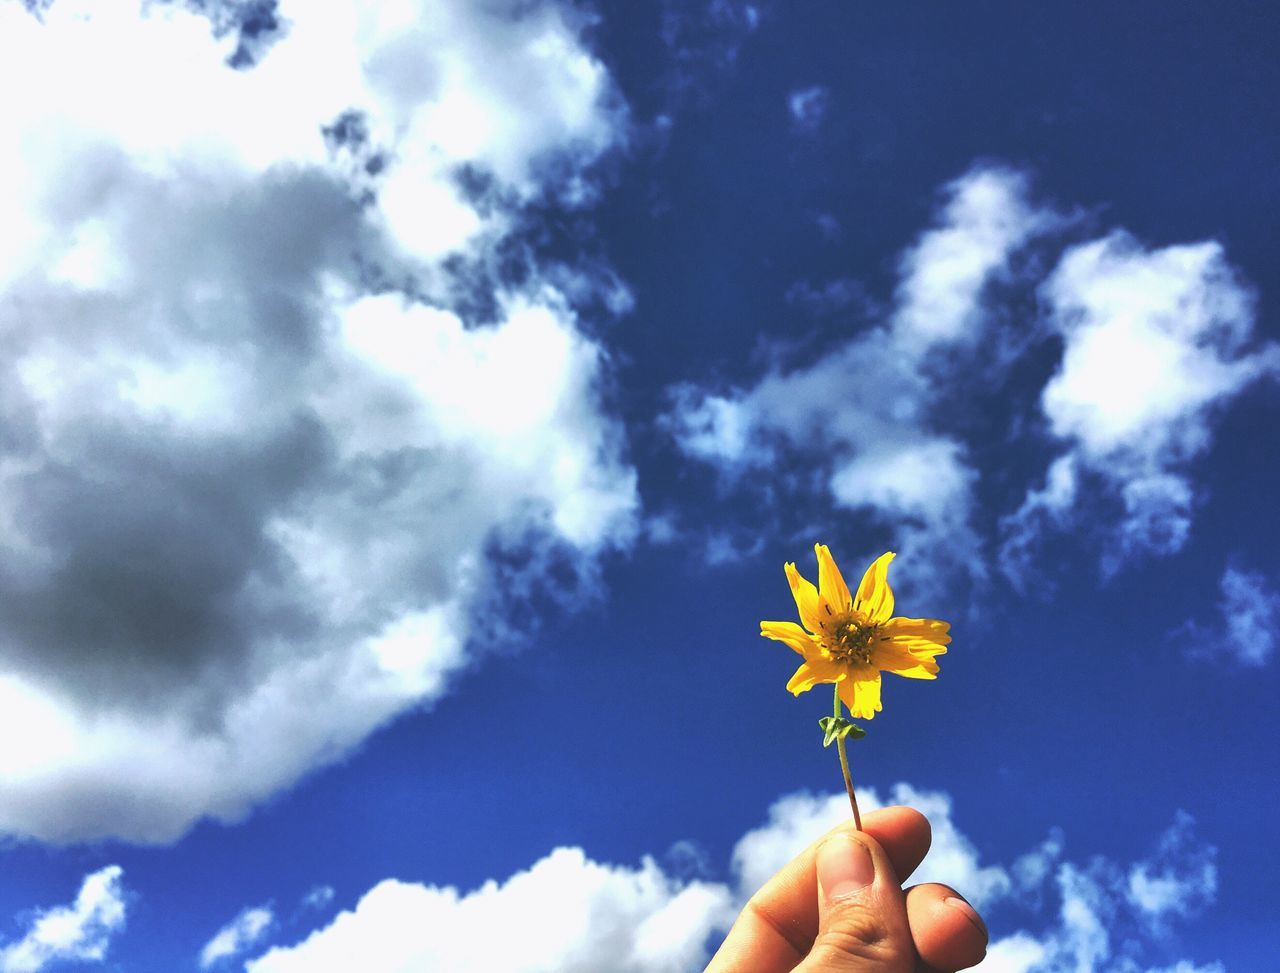 Human Hand Sky Holding Human Finger Flower Nature Real People One Person Cloud - Sky Outdoors Low Angle View Human Body Part Freshness Day Fragility Beauty In Nature Close-up Flower Head Blue Beauty In Nature Photography